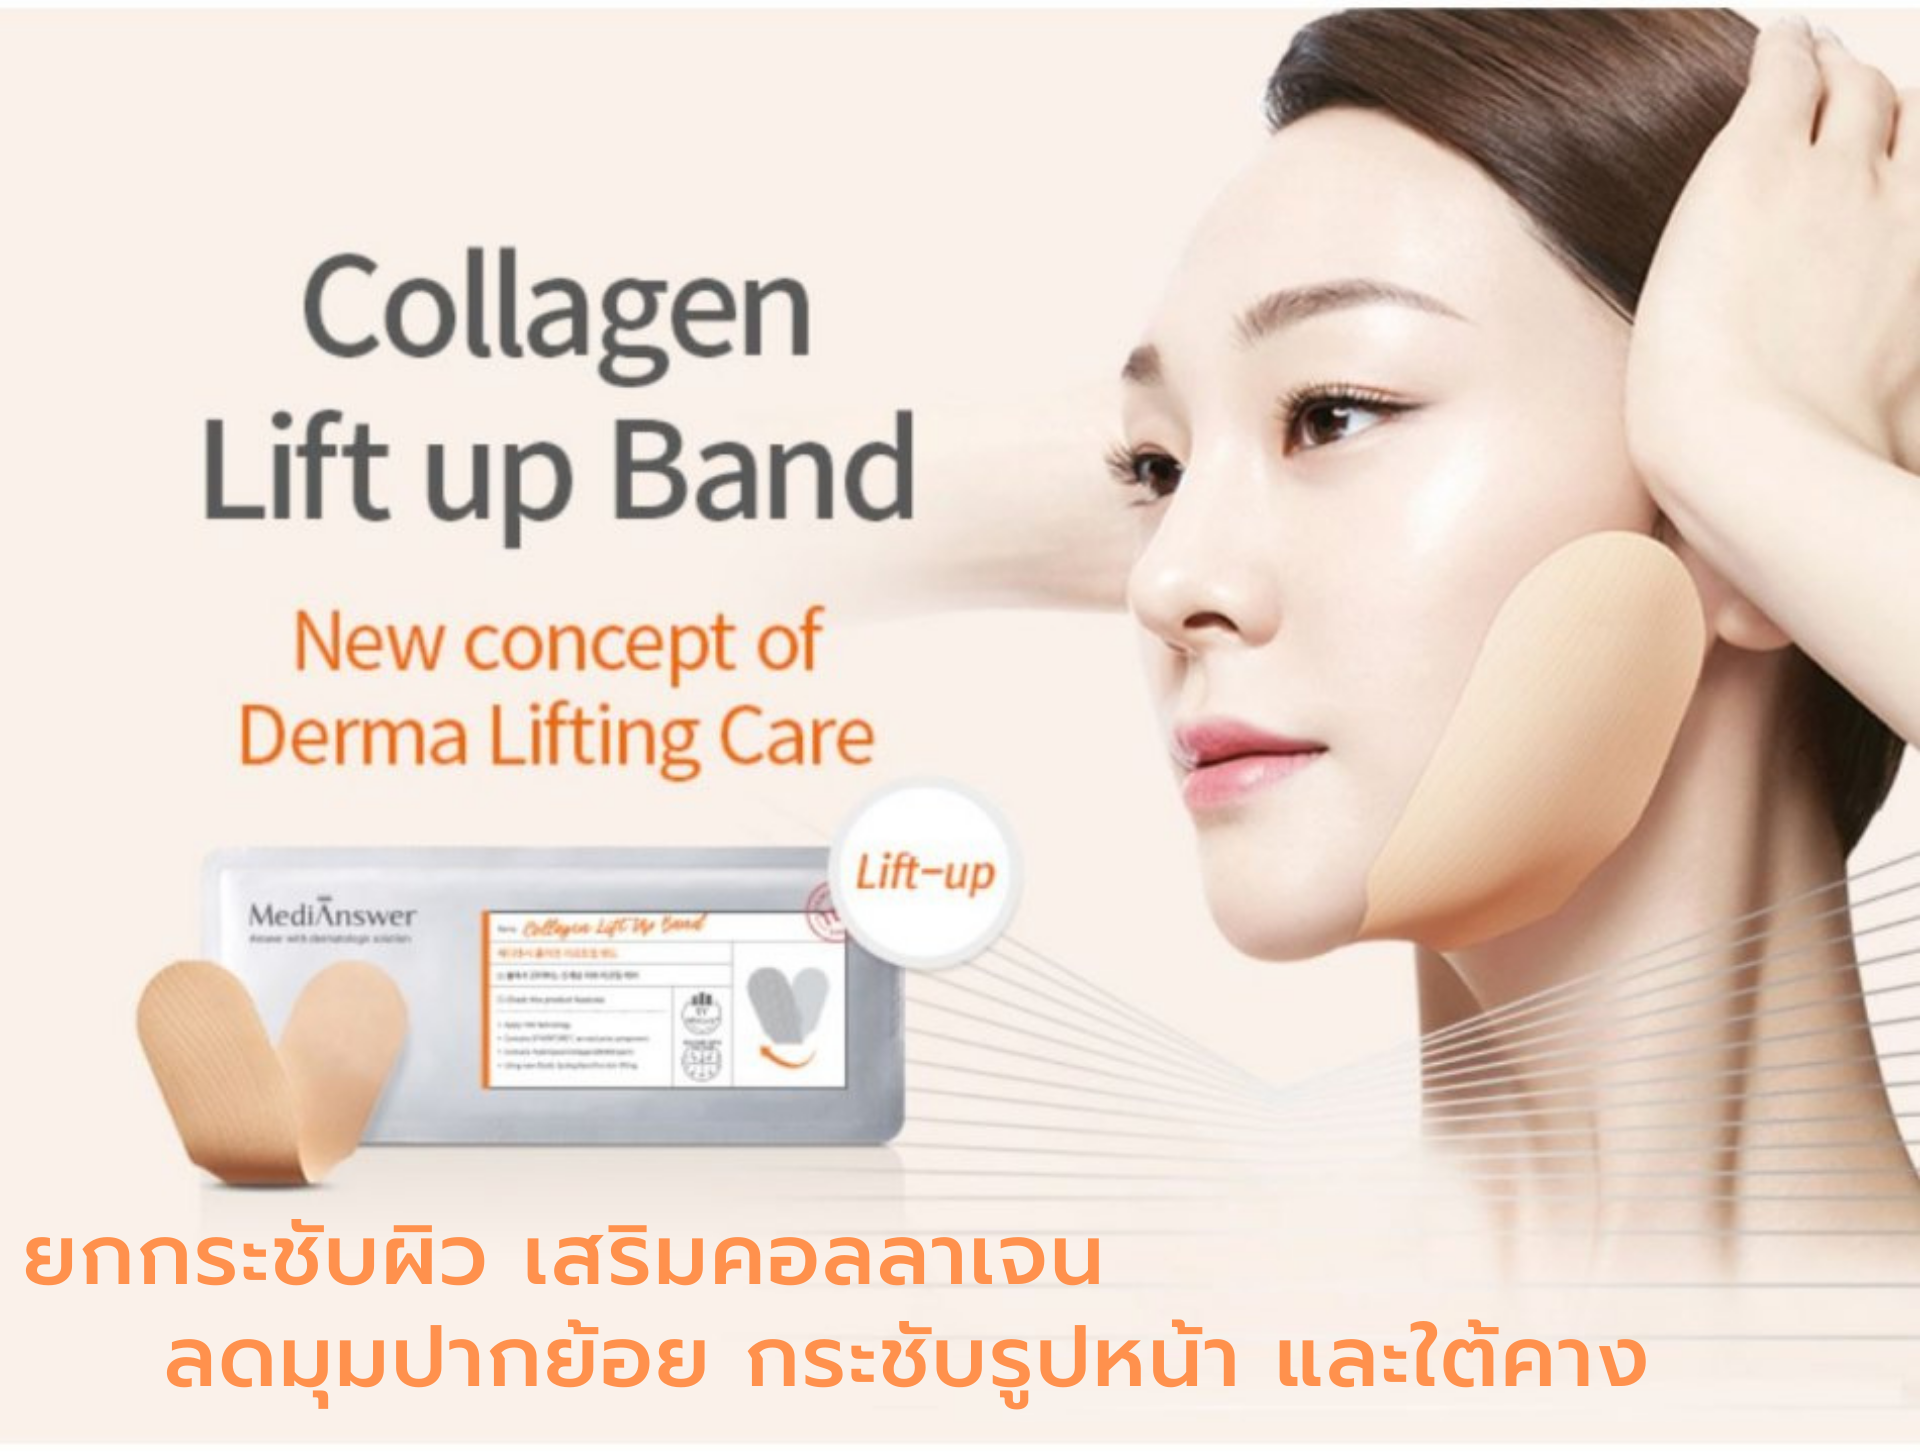 About Me Medi Answer Collagen Lift Up Band